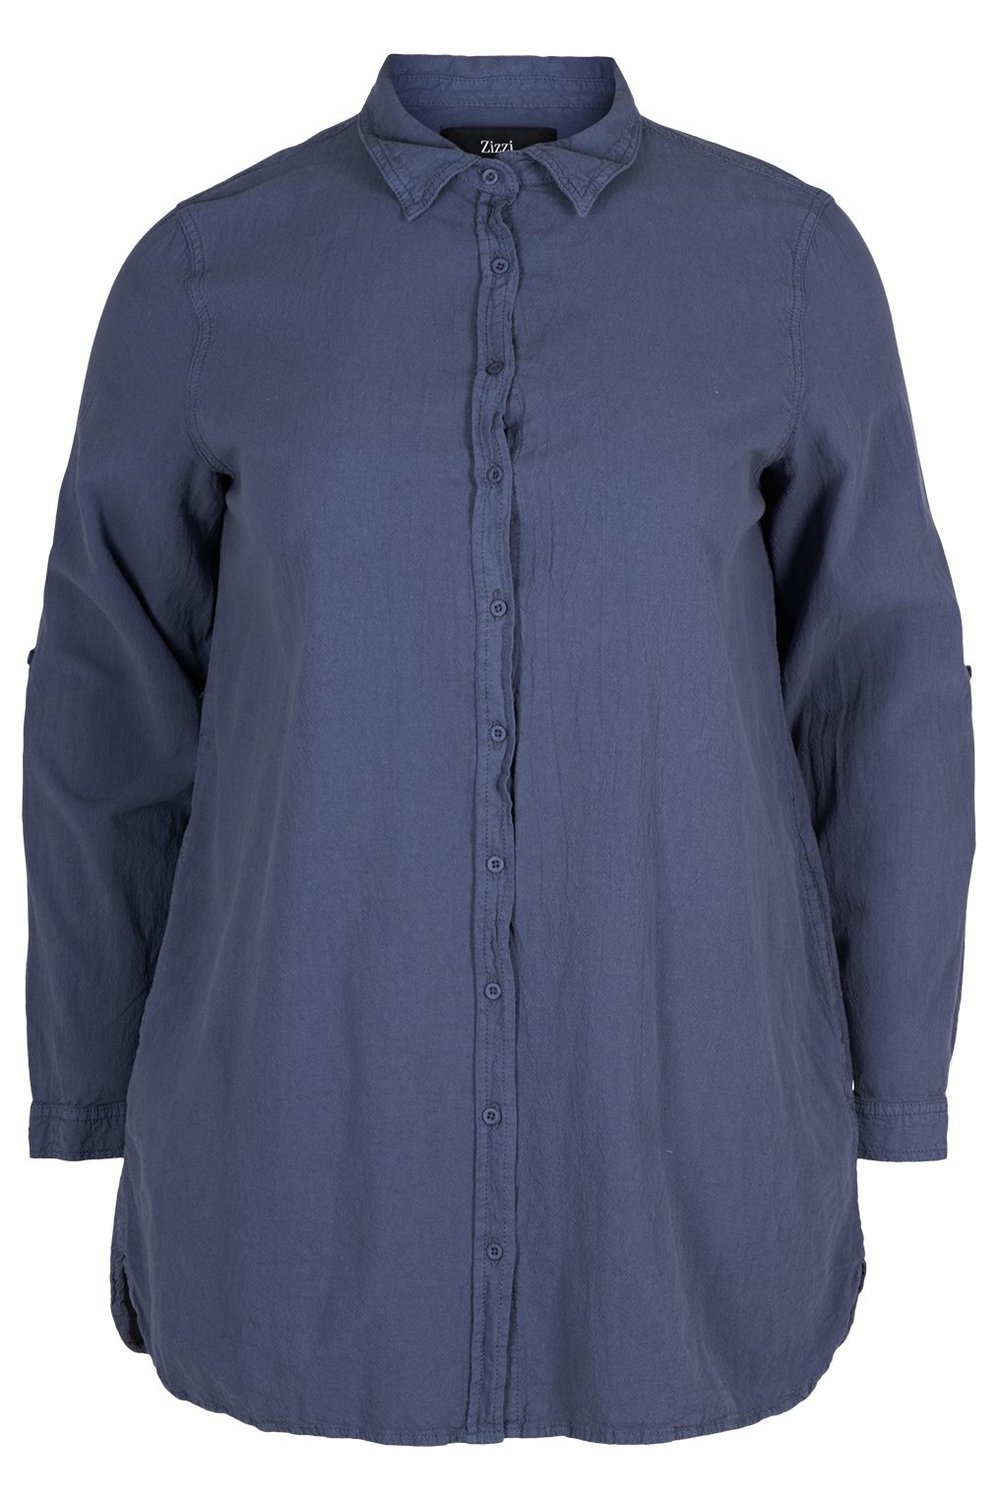 Blouse Zizzi Marrakesh lang